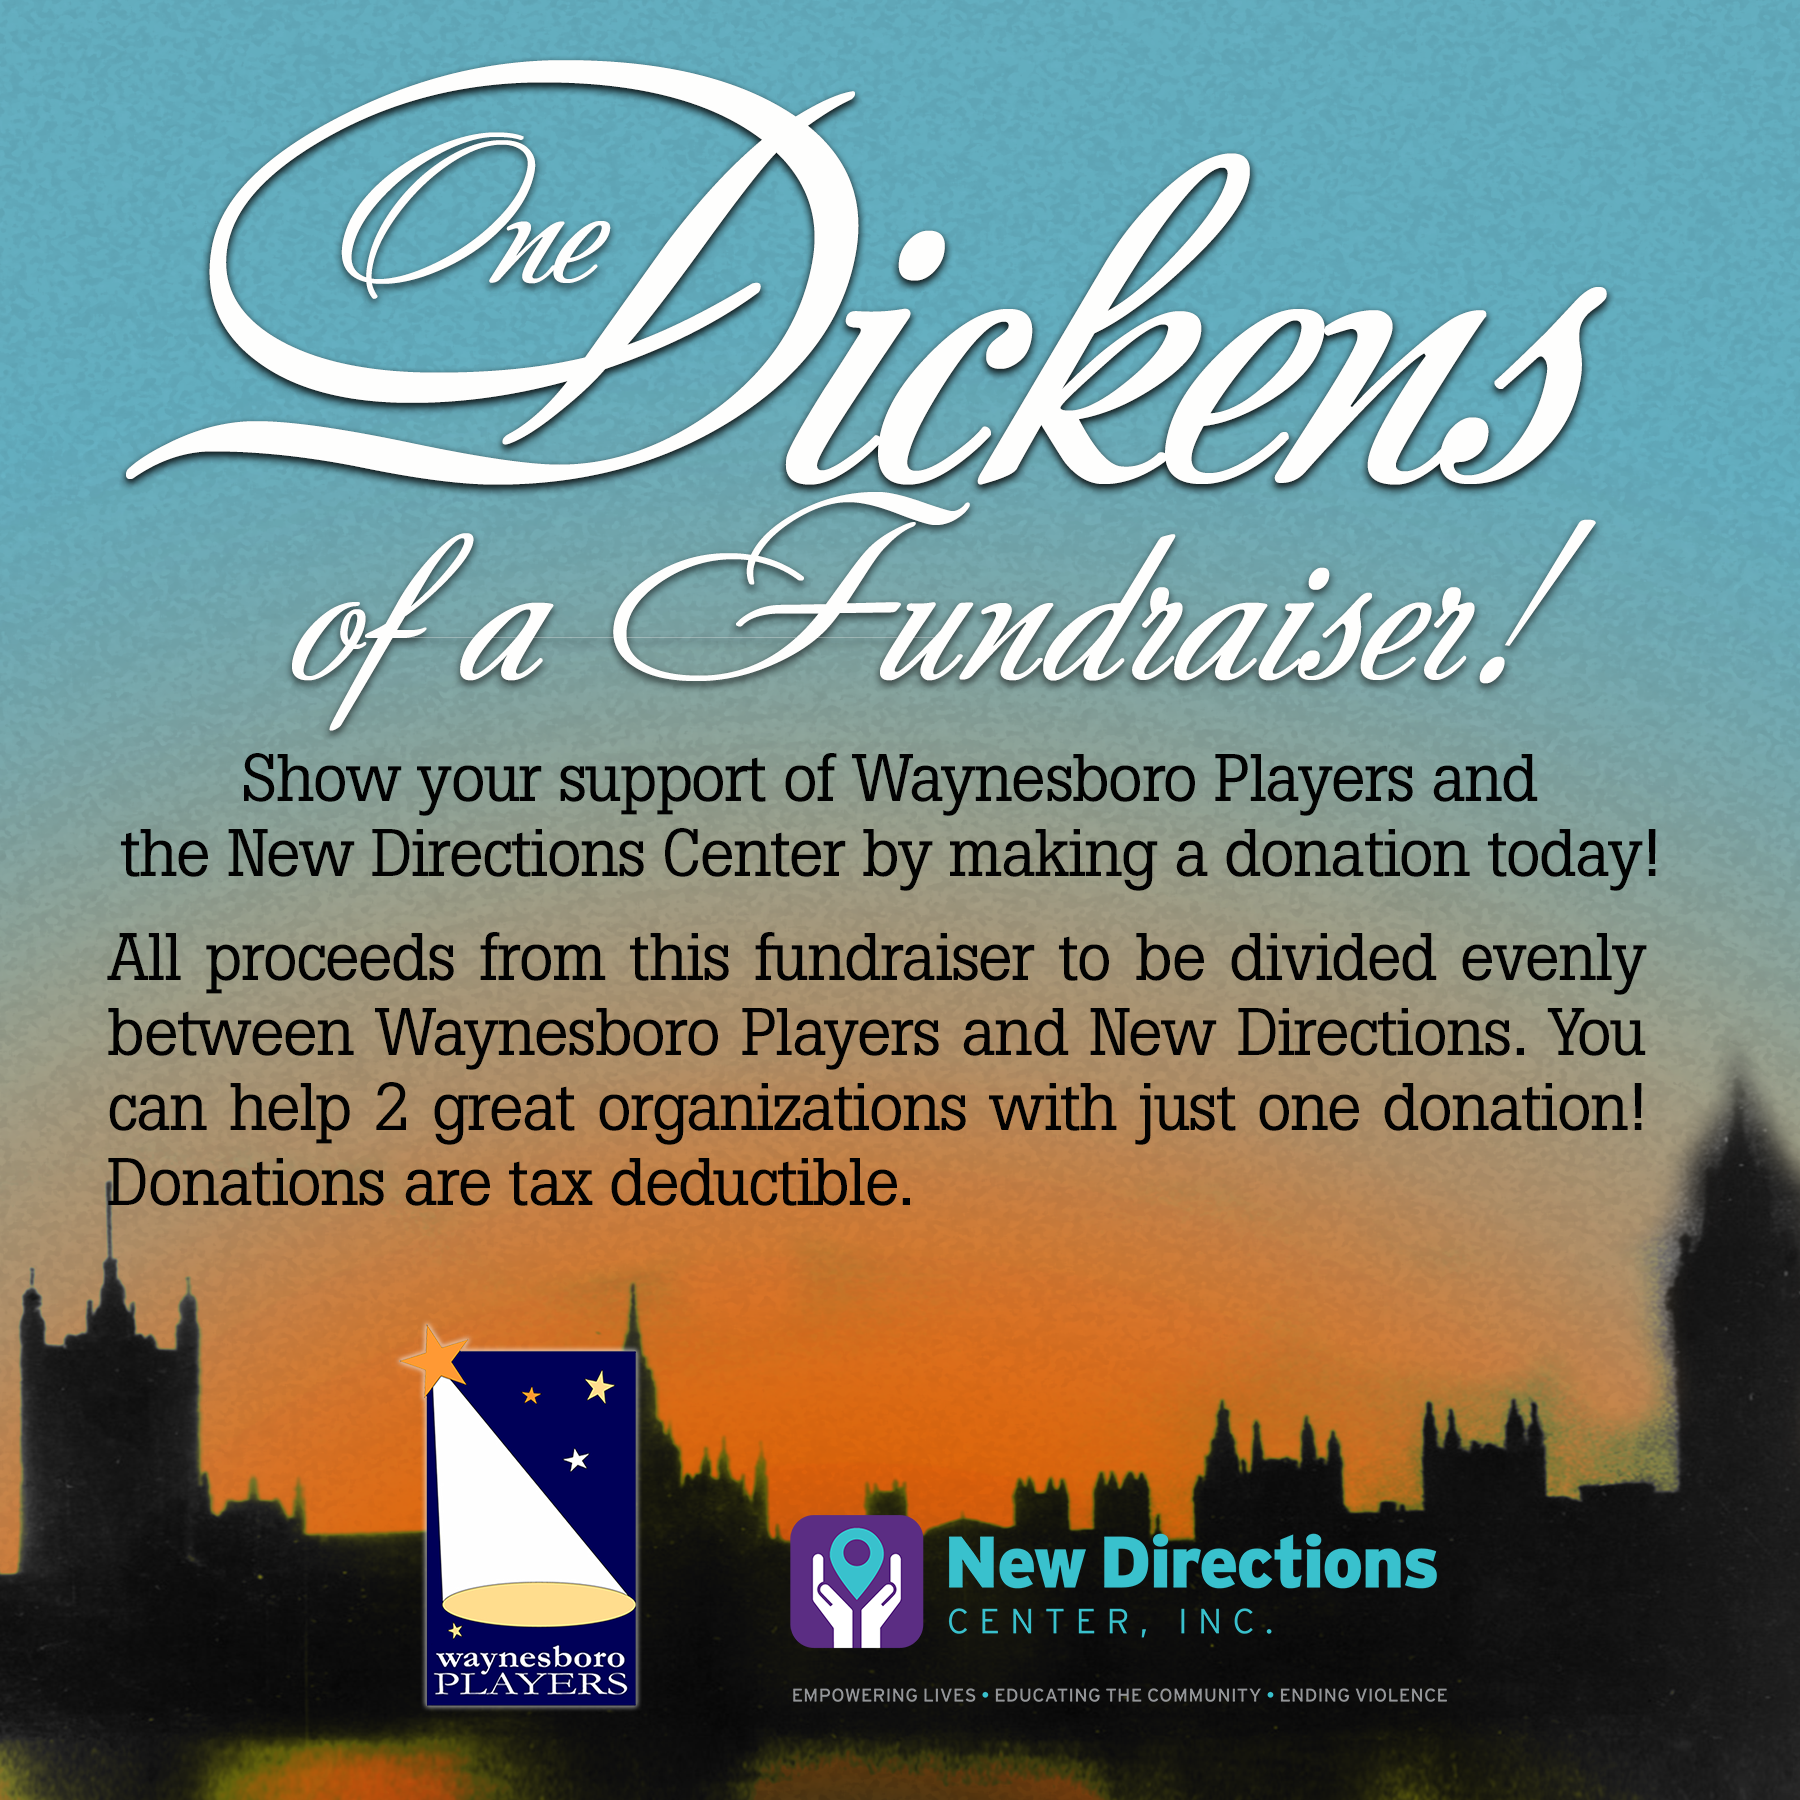 Donate to help New Directions and the Waynesboro Players